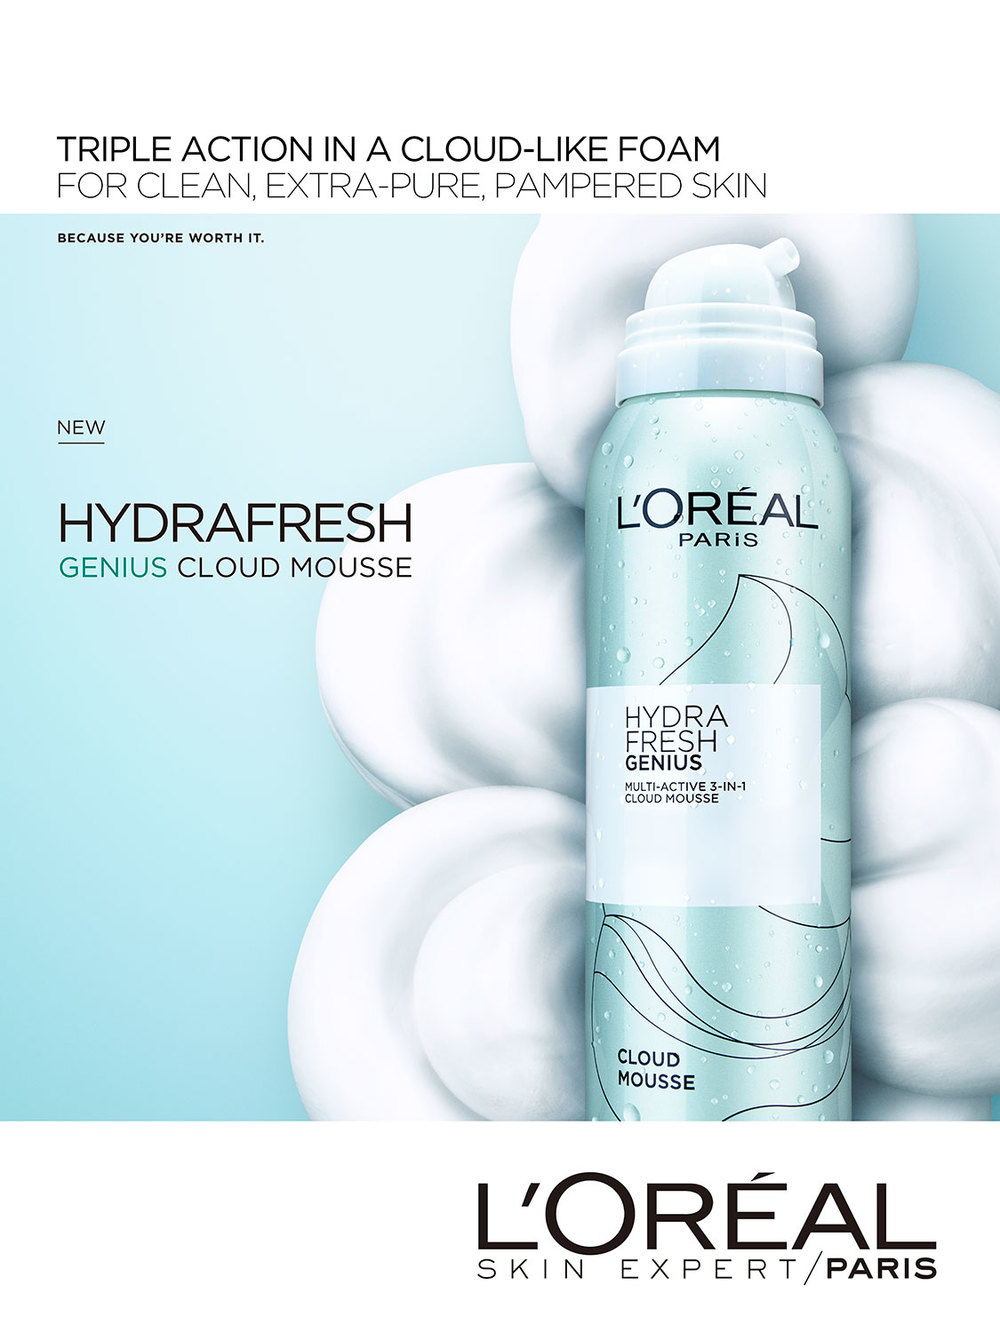 L'Oreal Hydrafresh 2016